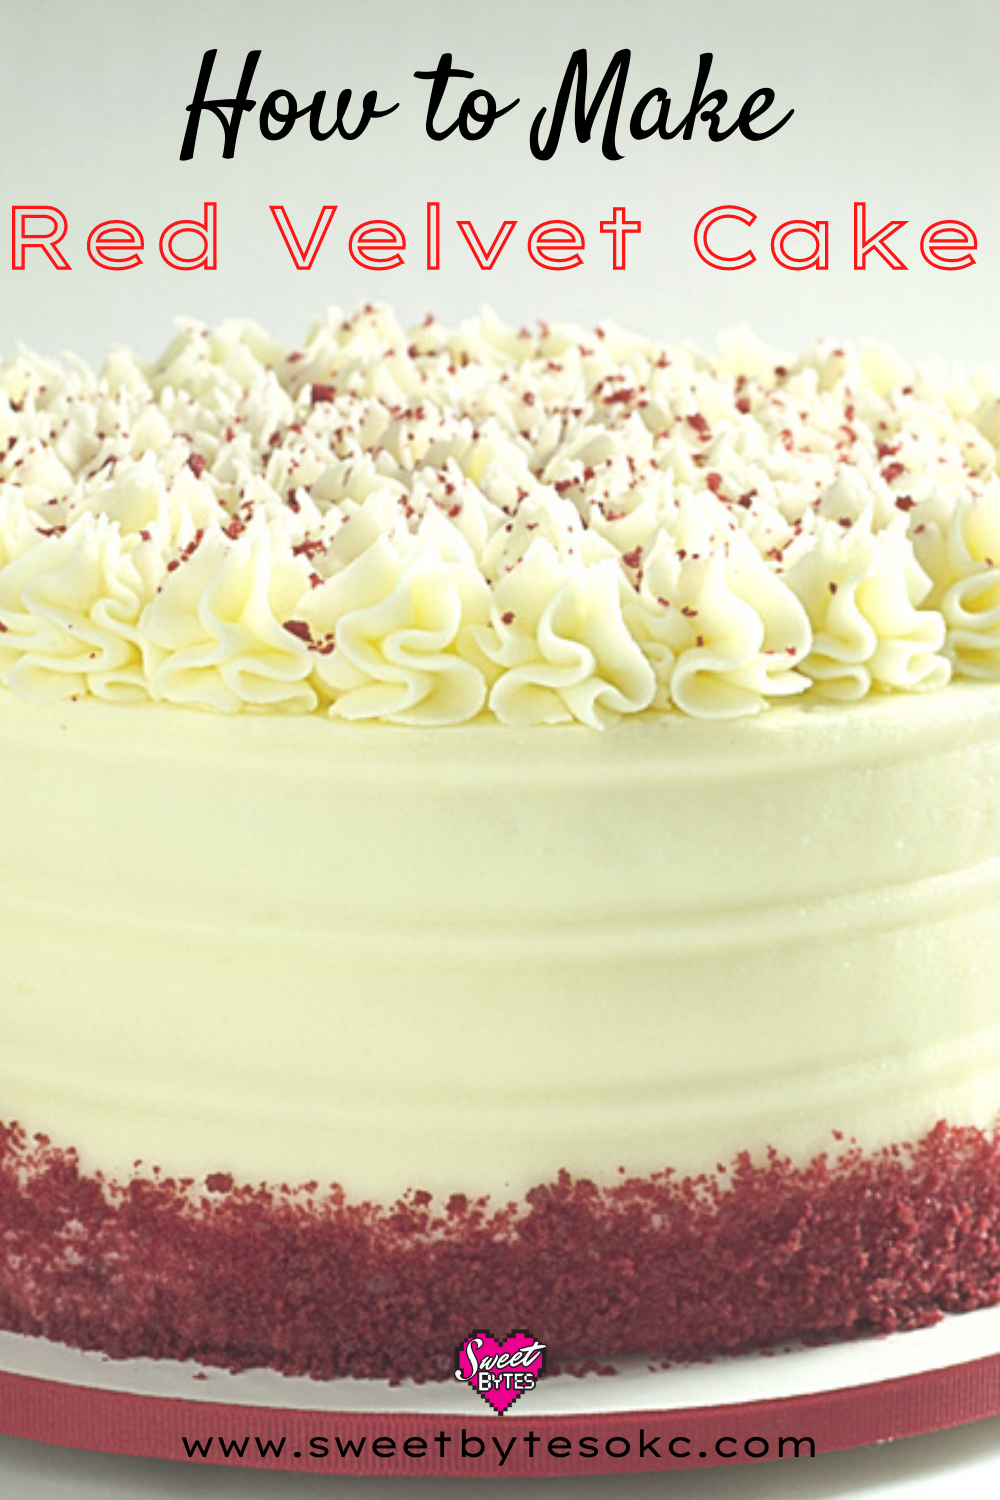 A close up of a beautiful red velvet cake with cake crumbs at the bottom and cream cheese frosting